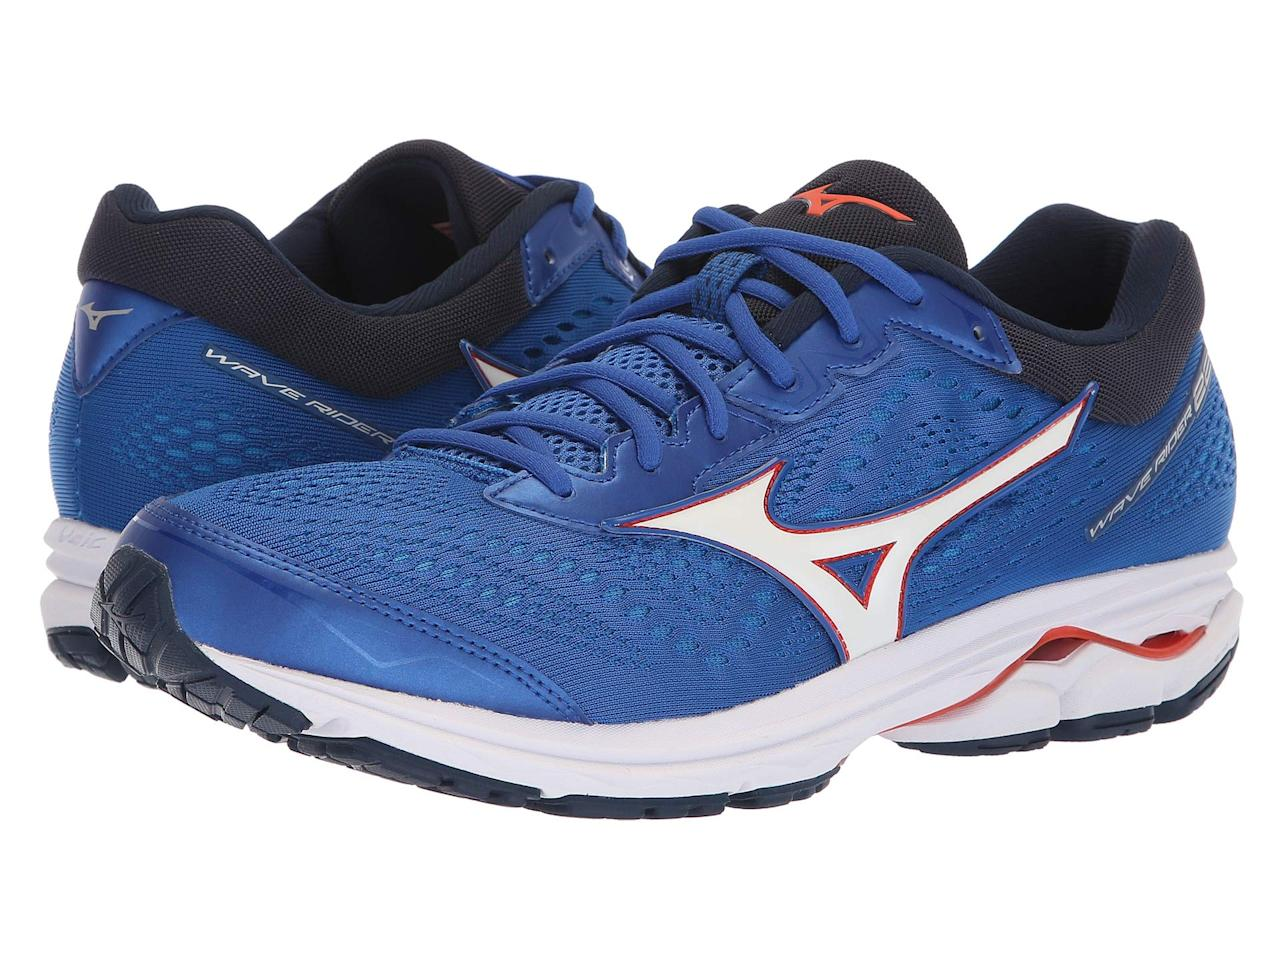 "<p><strong>Mizuno</strong></p><p>zappos.com</p><p><a href=""https://go.redirectingat.com?id=74968X1596630&url=https%3A%2F%2Fwww.zappos.com%2Fp%2Fmizuno-wave-rider-22-monument-black%2Fproduct%2F9043213&sref=http%3A%2F%2Fwww.menshealth.com%2Ftechnology-gear%2Fg28473035%2Fzappos-birthday-sale-july-2019%2F"" target=""_blank"">BUY IT HERE</a></p><p><del>$119.95</del><strong><br>$86.39 with code ""BDAY20"" </strong></p><p>Mizuno's Wave Rider 22 running shoes might feel firm at first, but they're lightweight enough to make sprints a breeze.</p>"